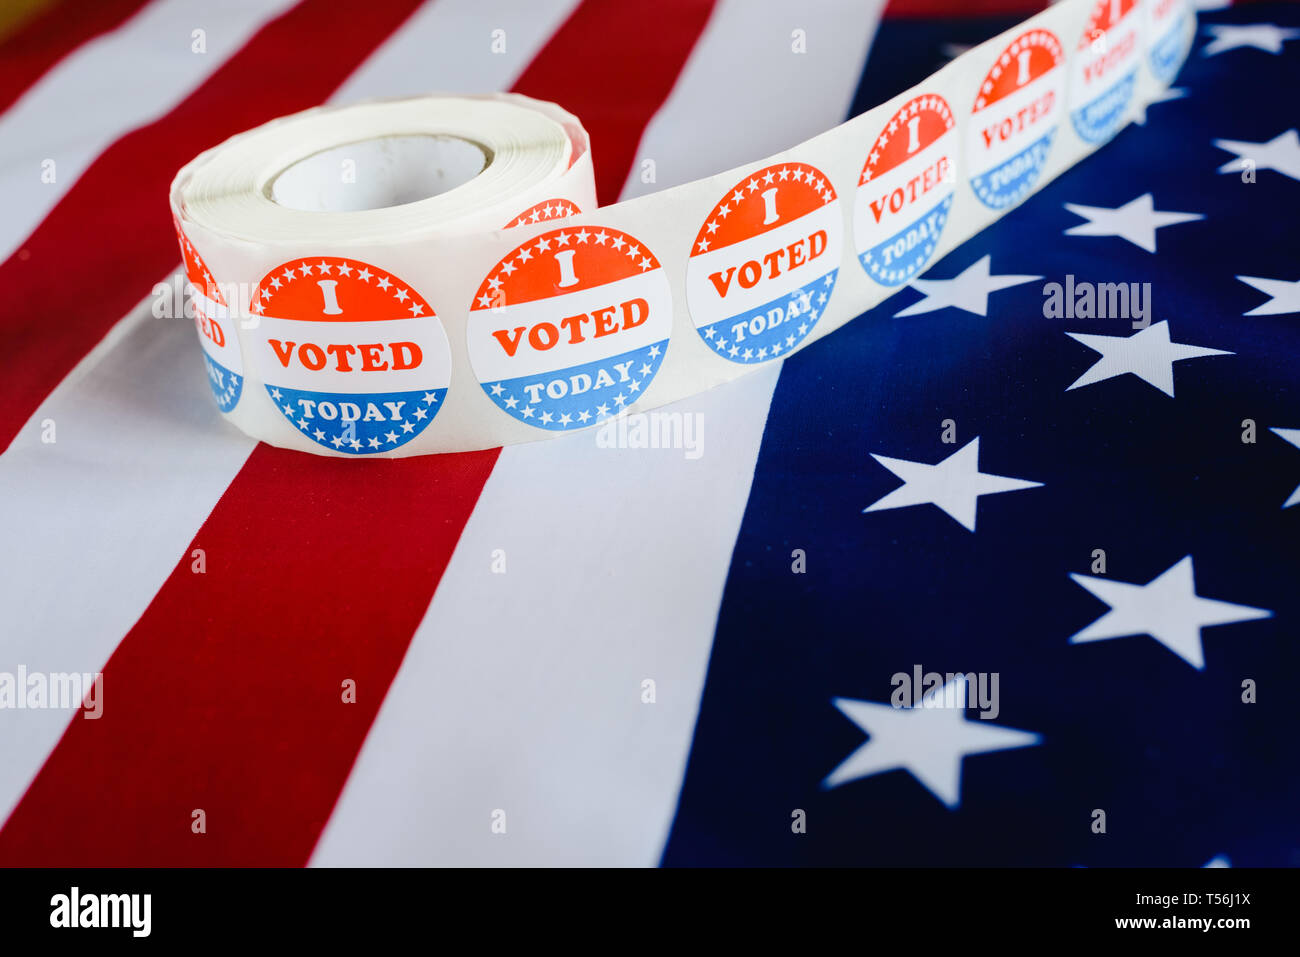 I voted today sticker, typical of US elections on American flag. - Stock Image